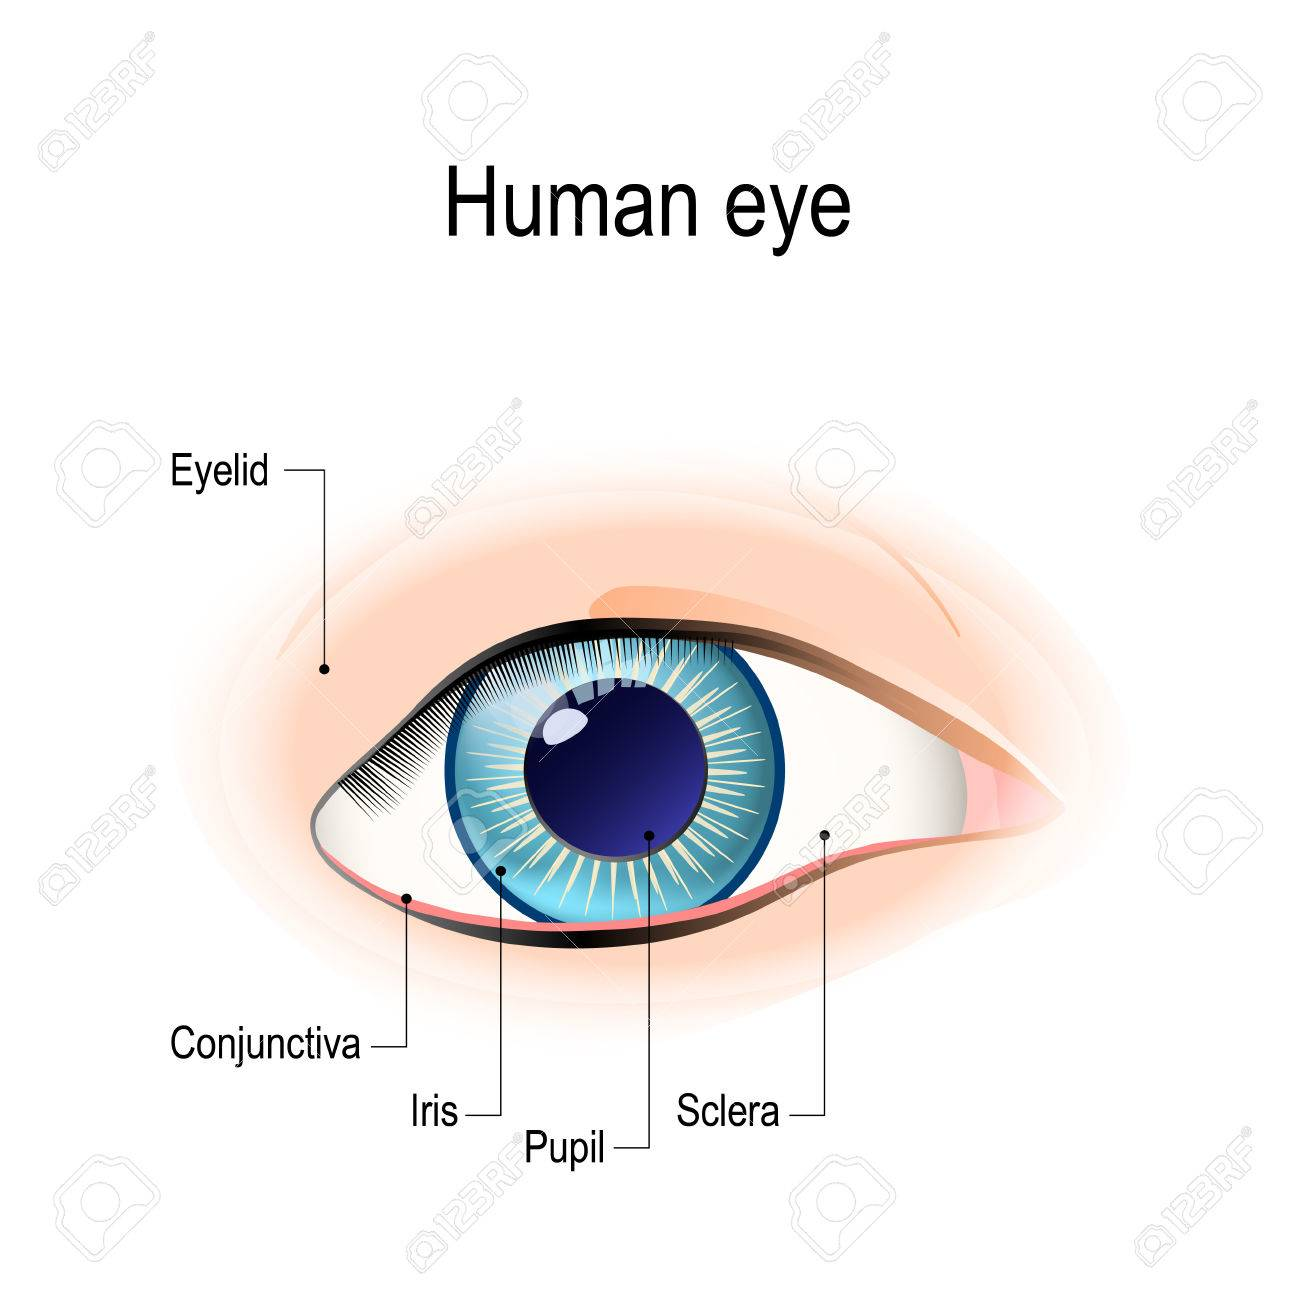 hight resolution of anatomy of the human eye in front external view schematic diagram detailed illustration stock vector